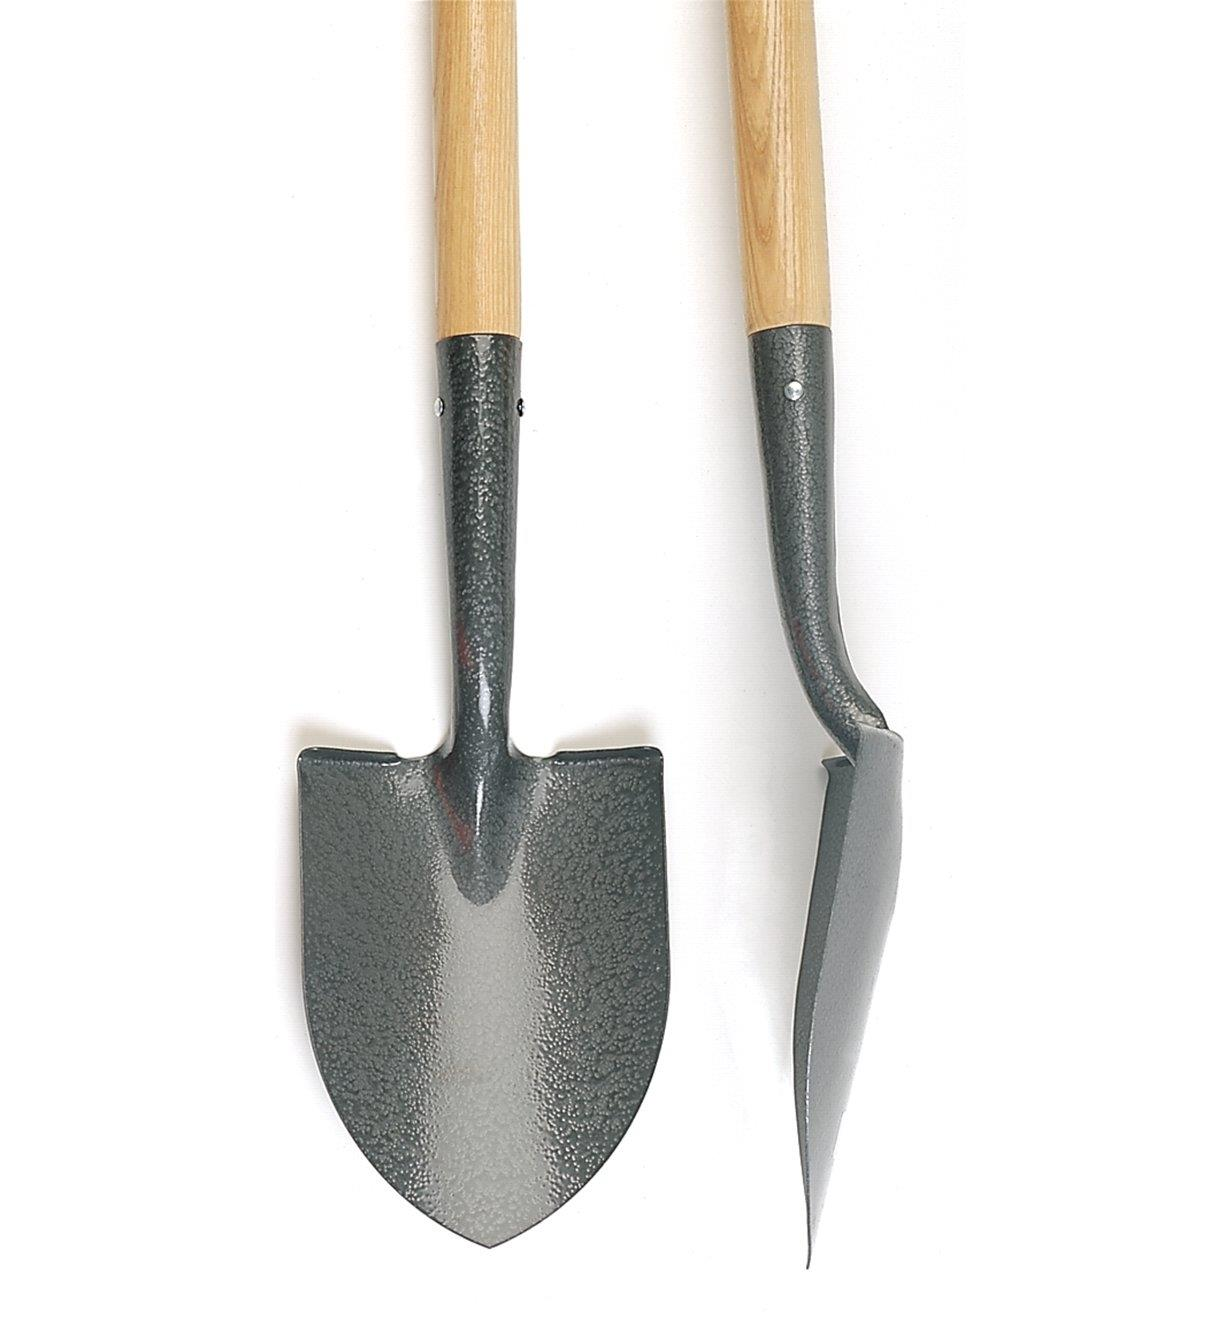 Front and side views of the Floral Shovel blade